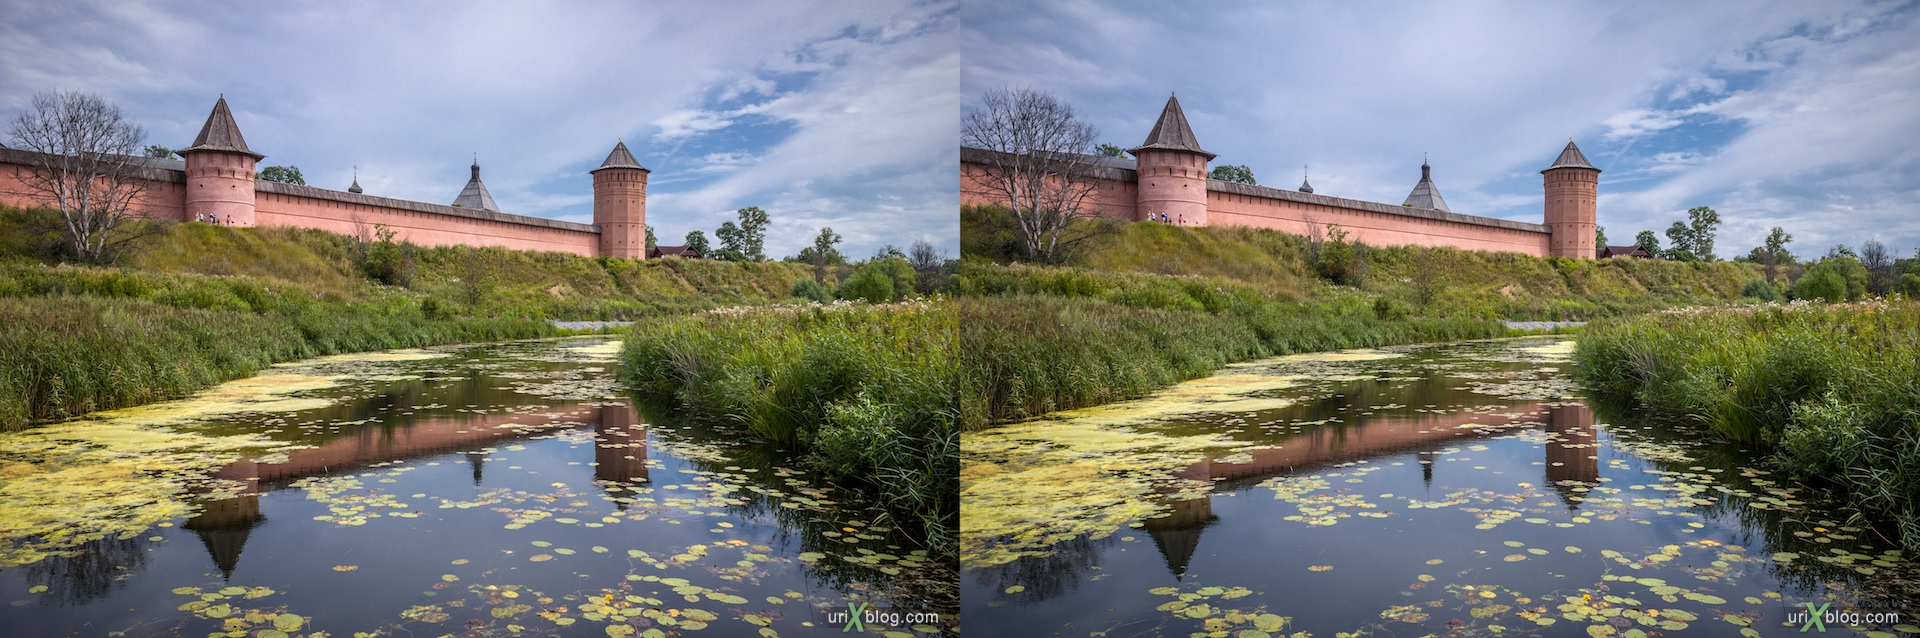 2012 Russia Suzdal stereo 3d